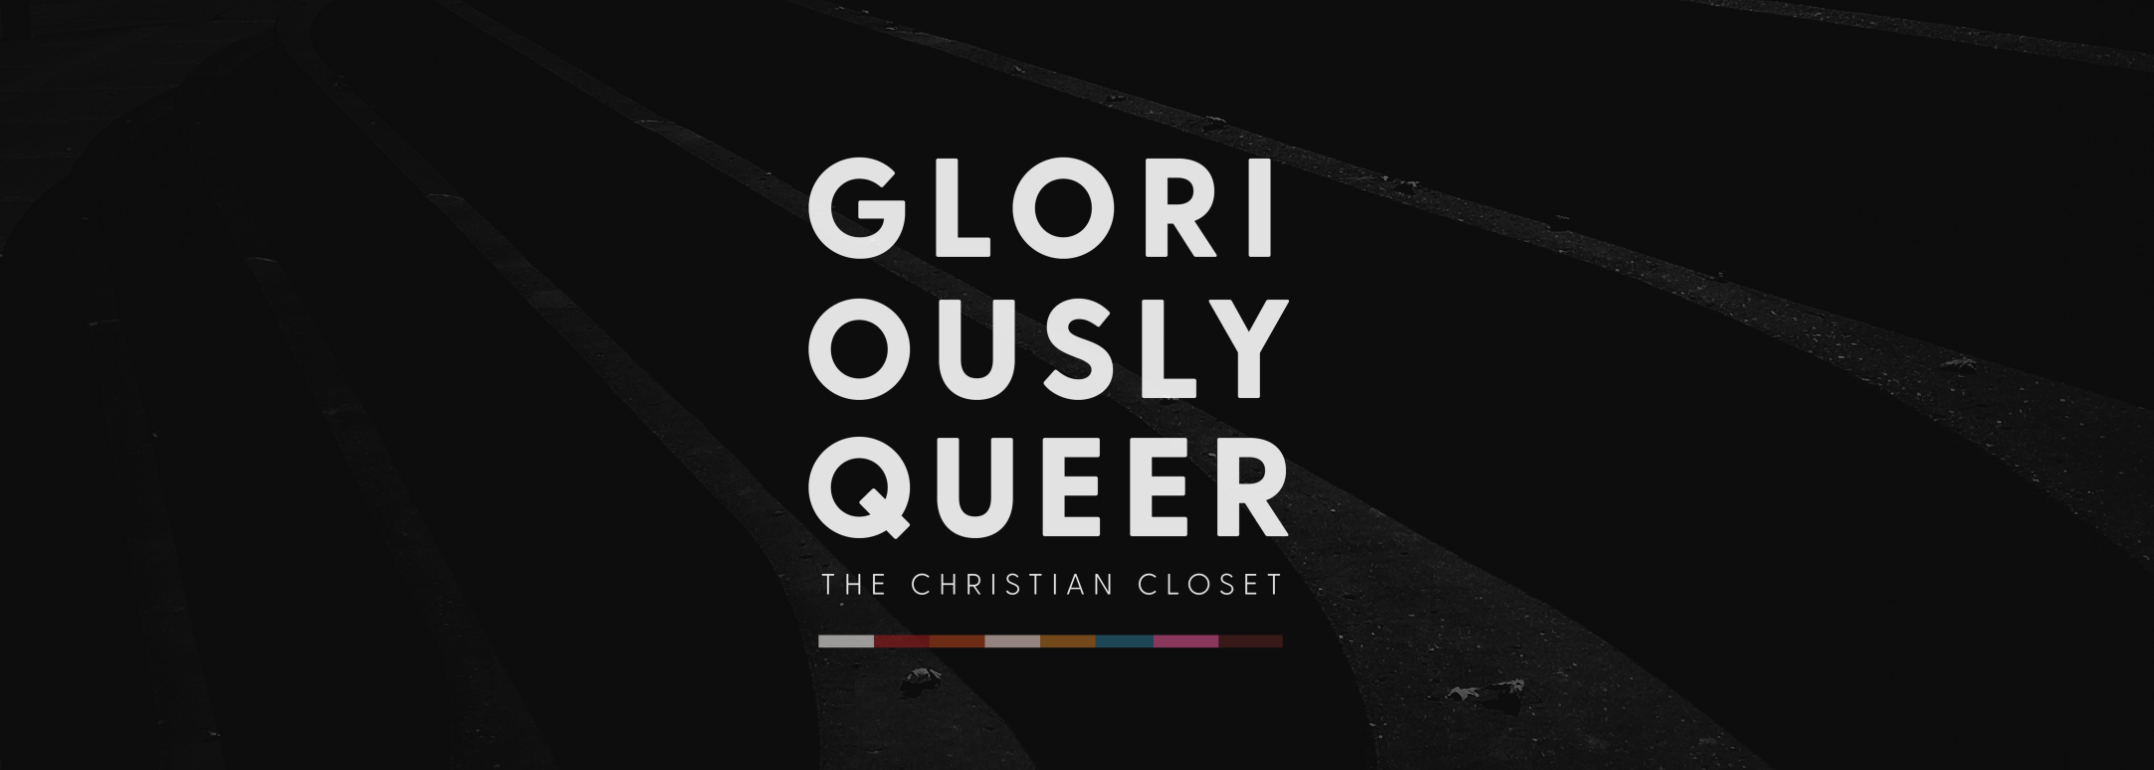 Gloriously Queer - The Christian Closet x New Abbey Event logo